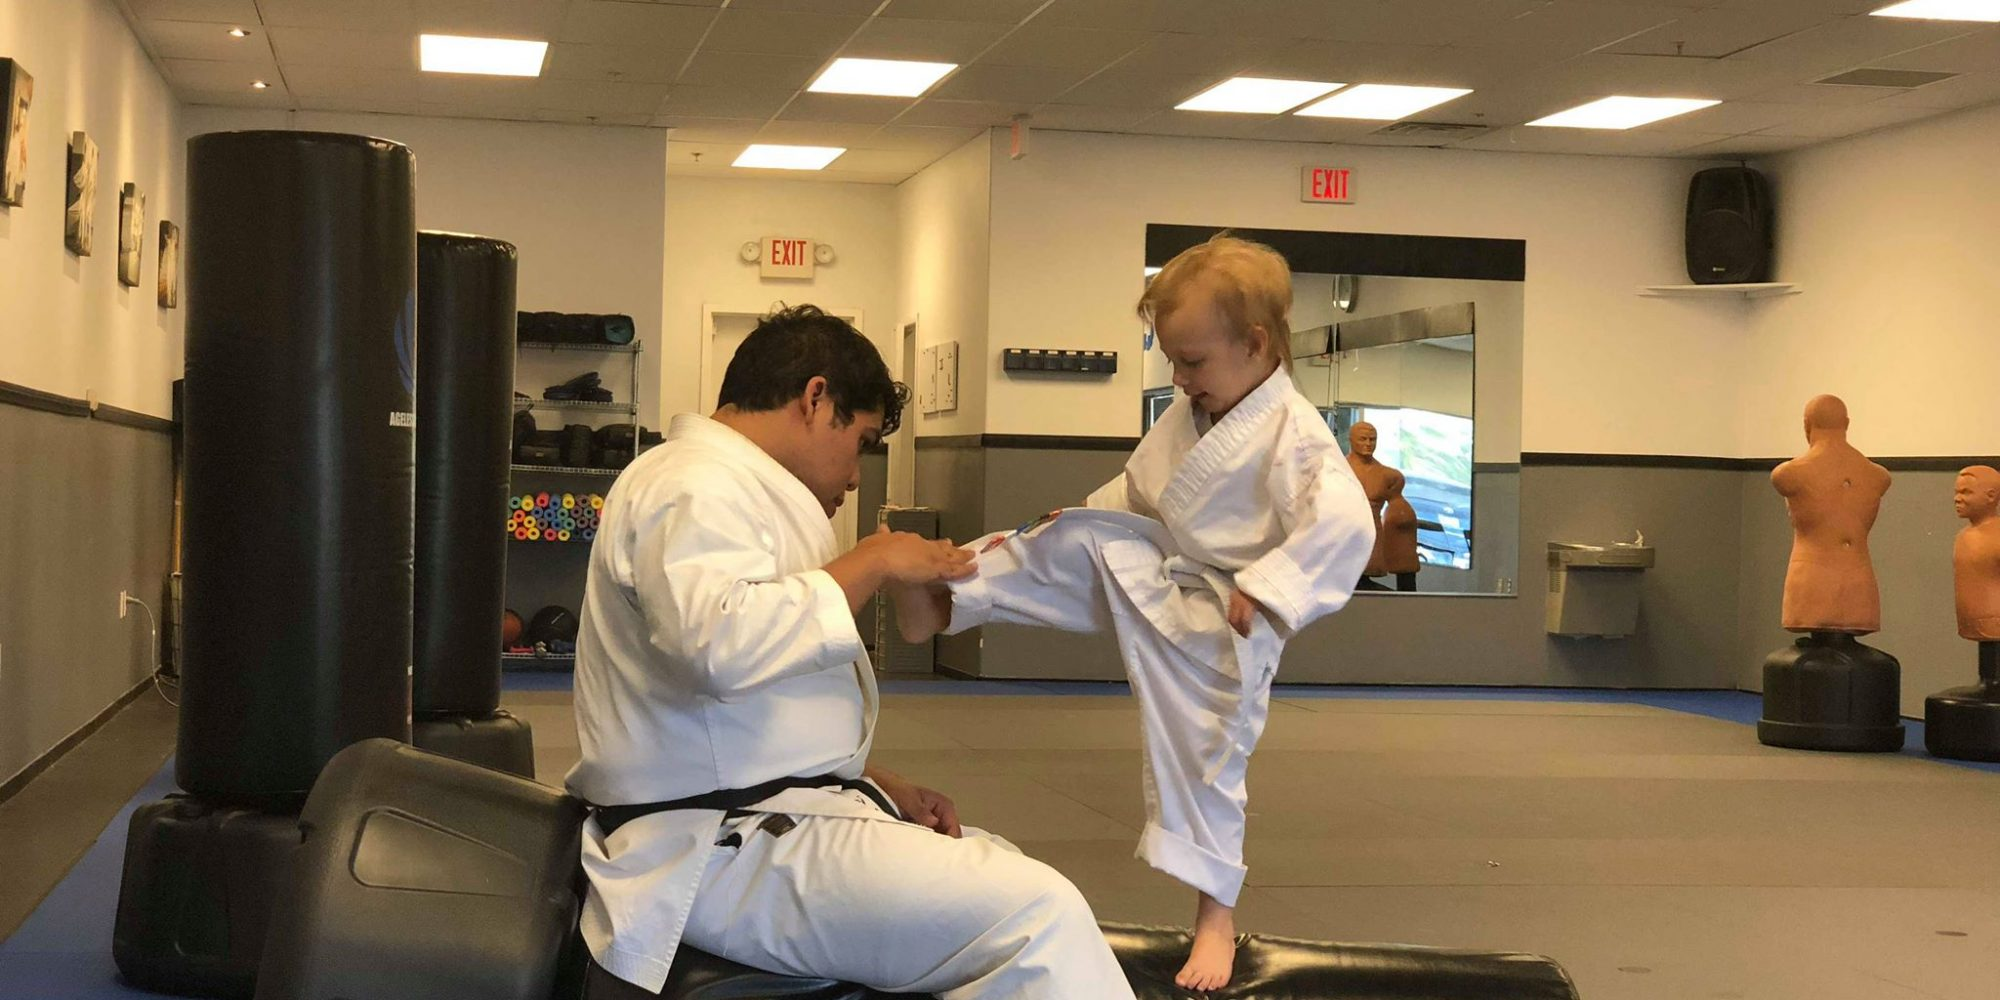 Kids Karate Las Vegas Toddler Martial Arts Karate Classes Near Me